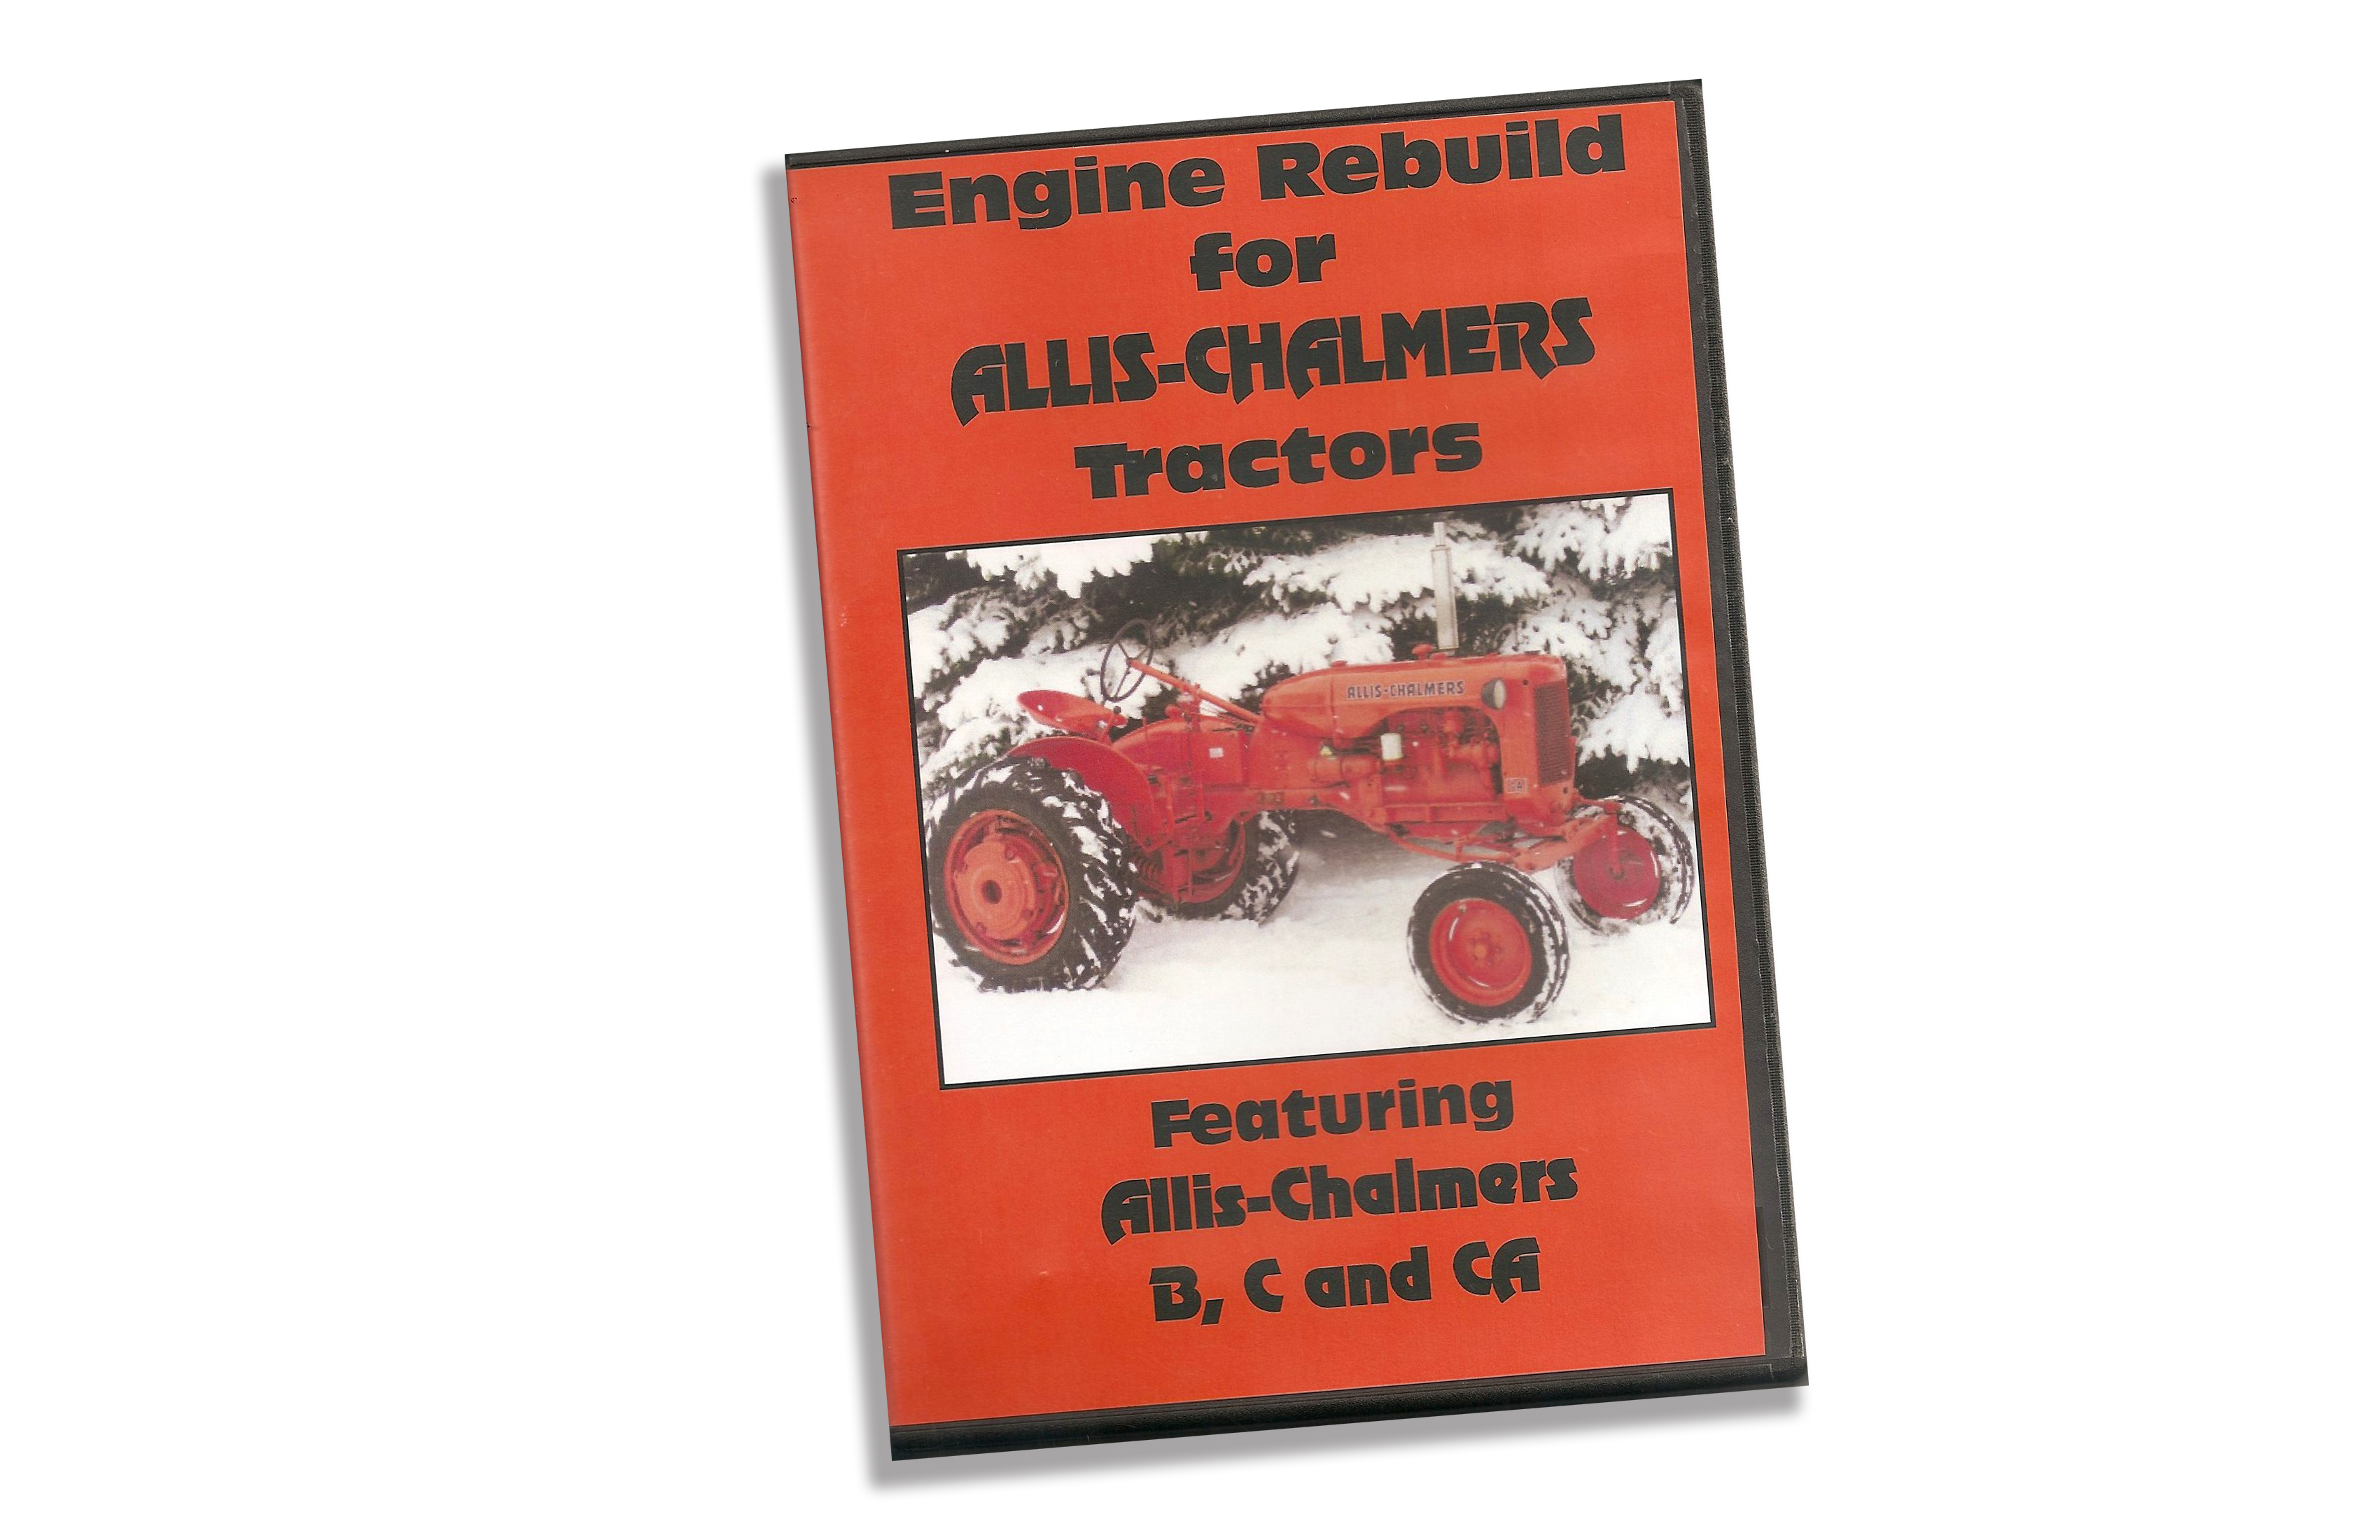 Engine Rebuild for Allis-Chalmers tractors DVD, featuring B, C and CA